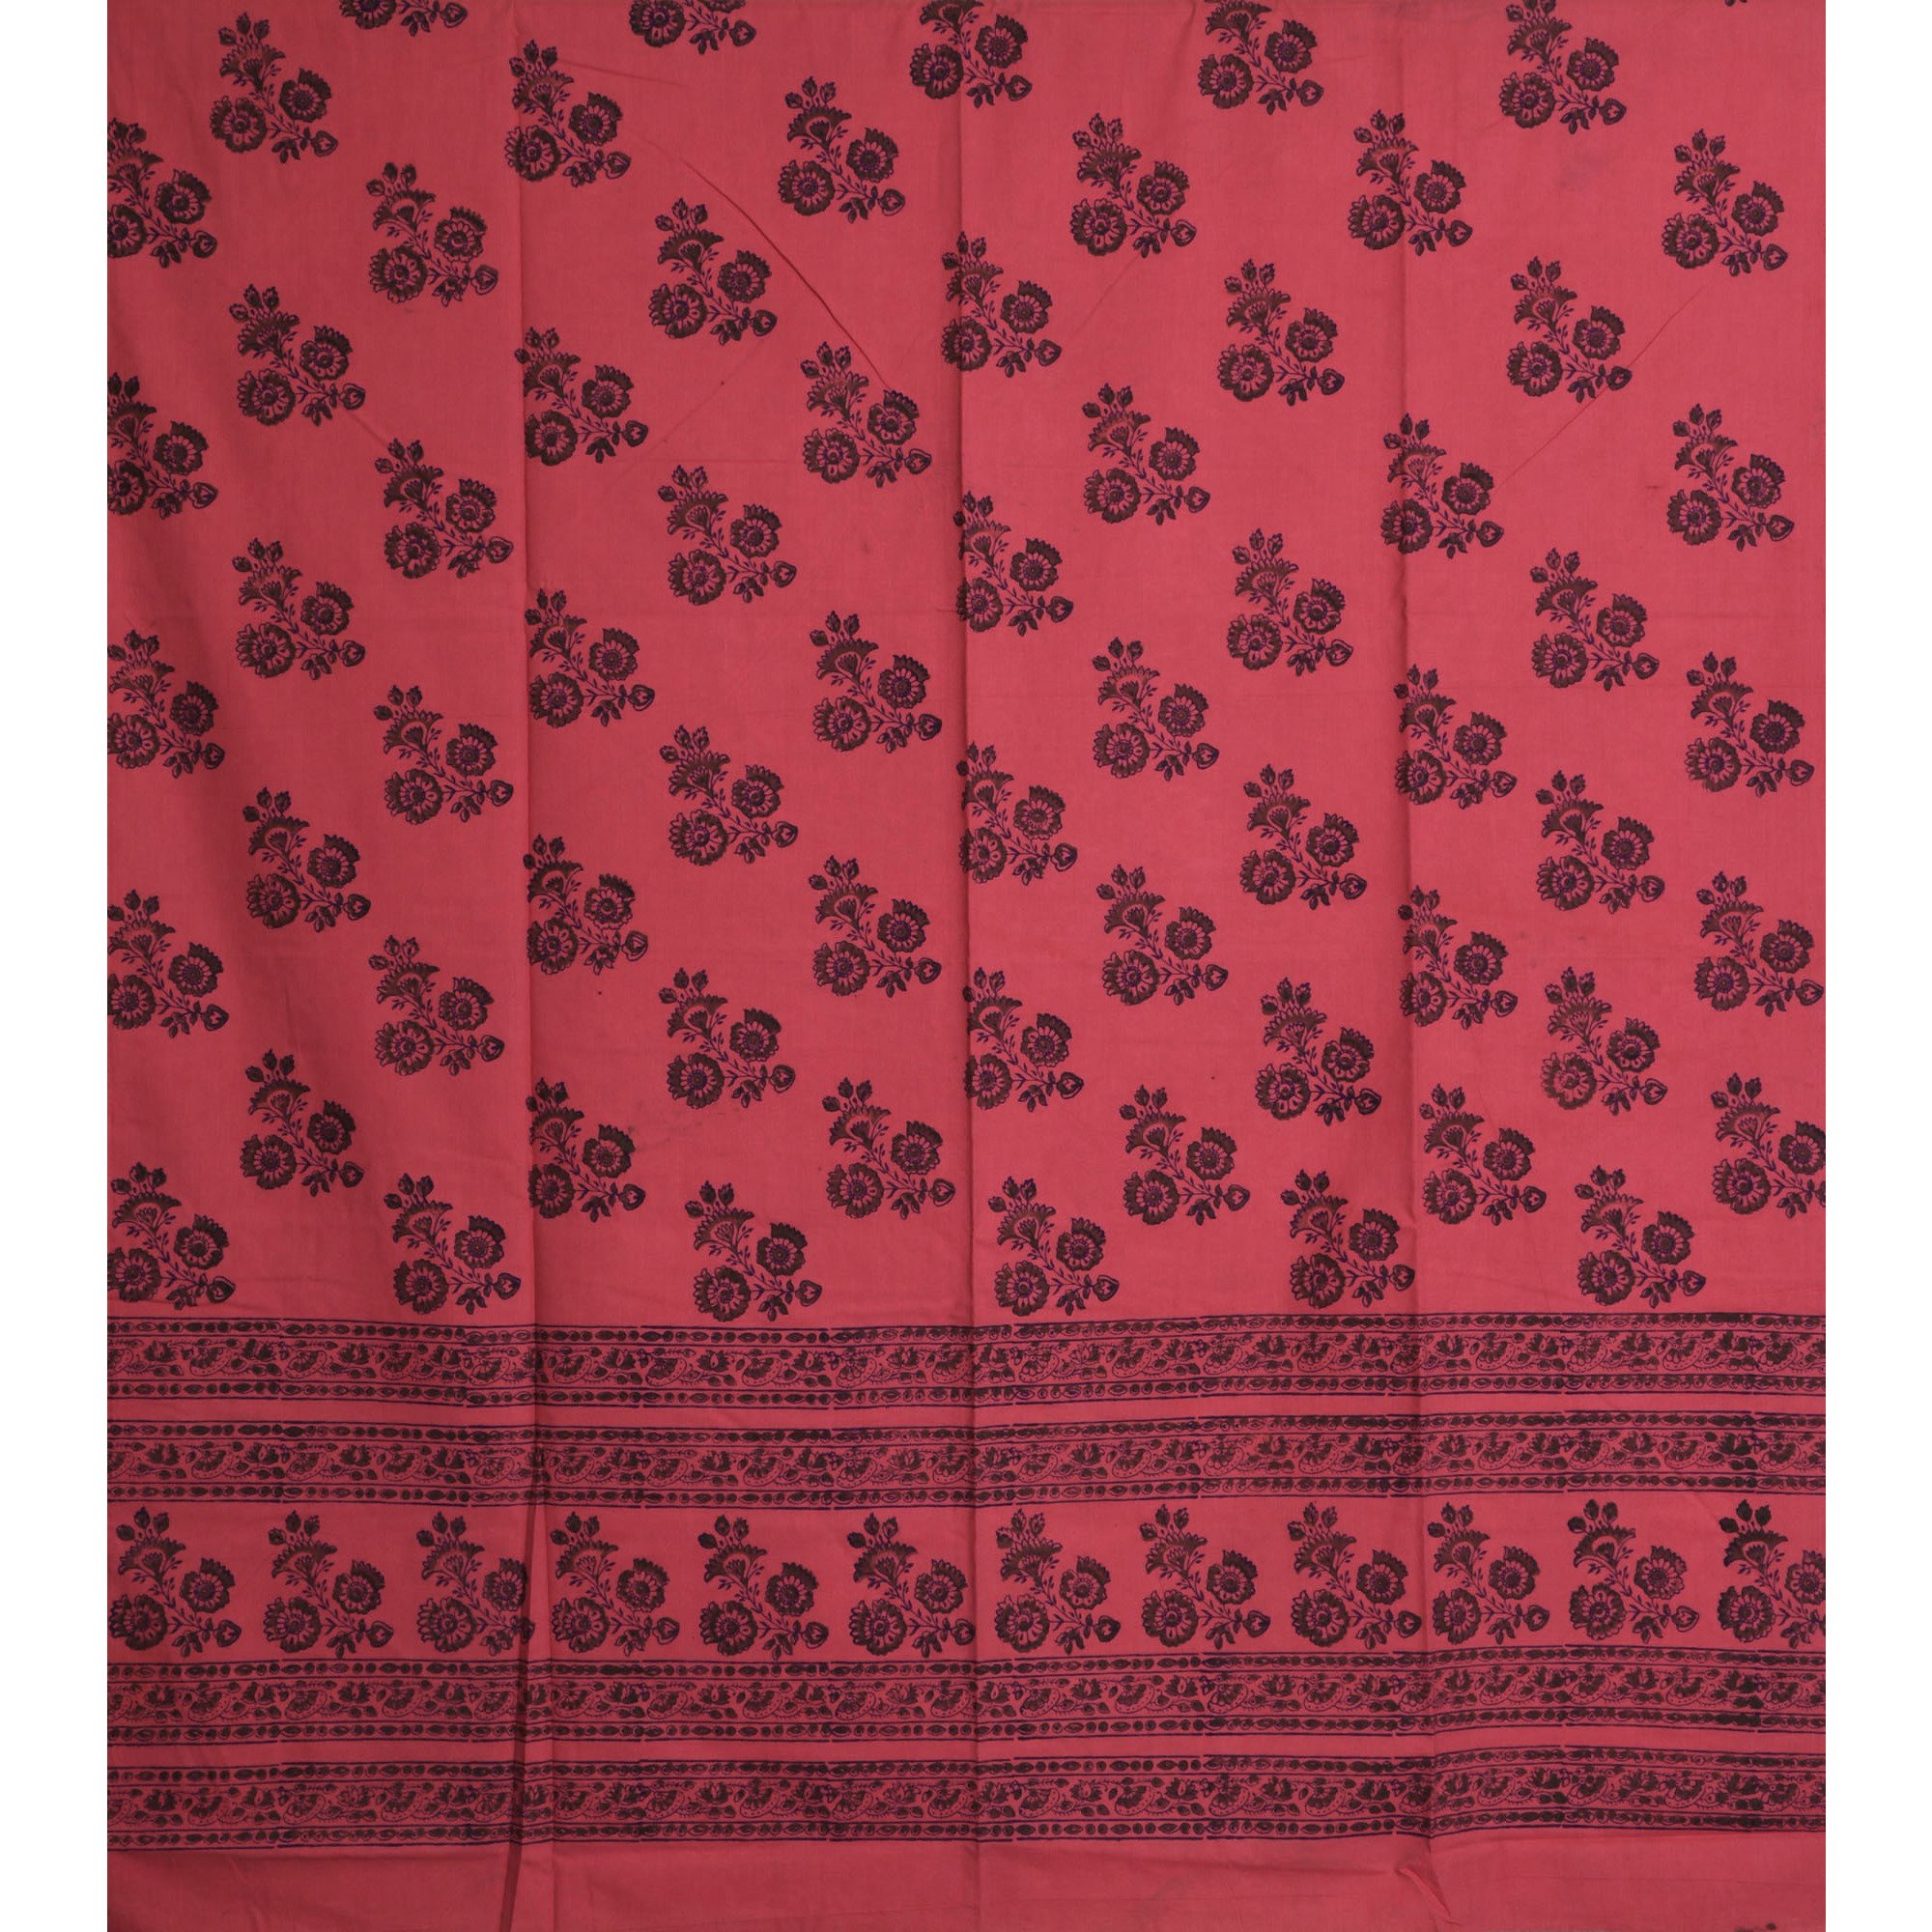 Sunkist-Coral Curtain with Printed Flowers All-Over